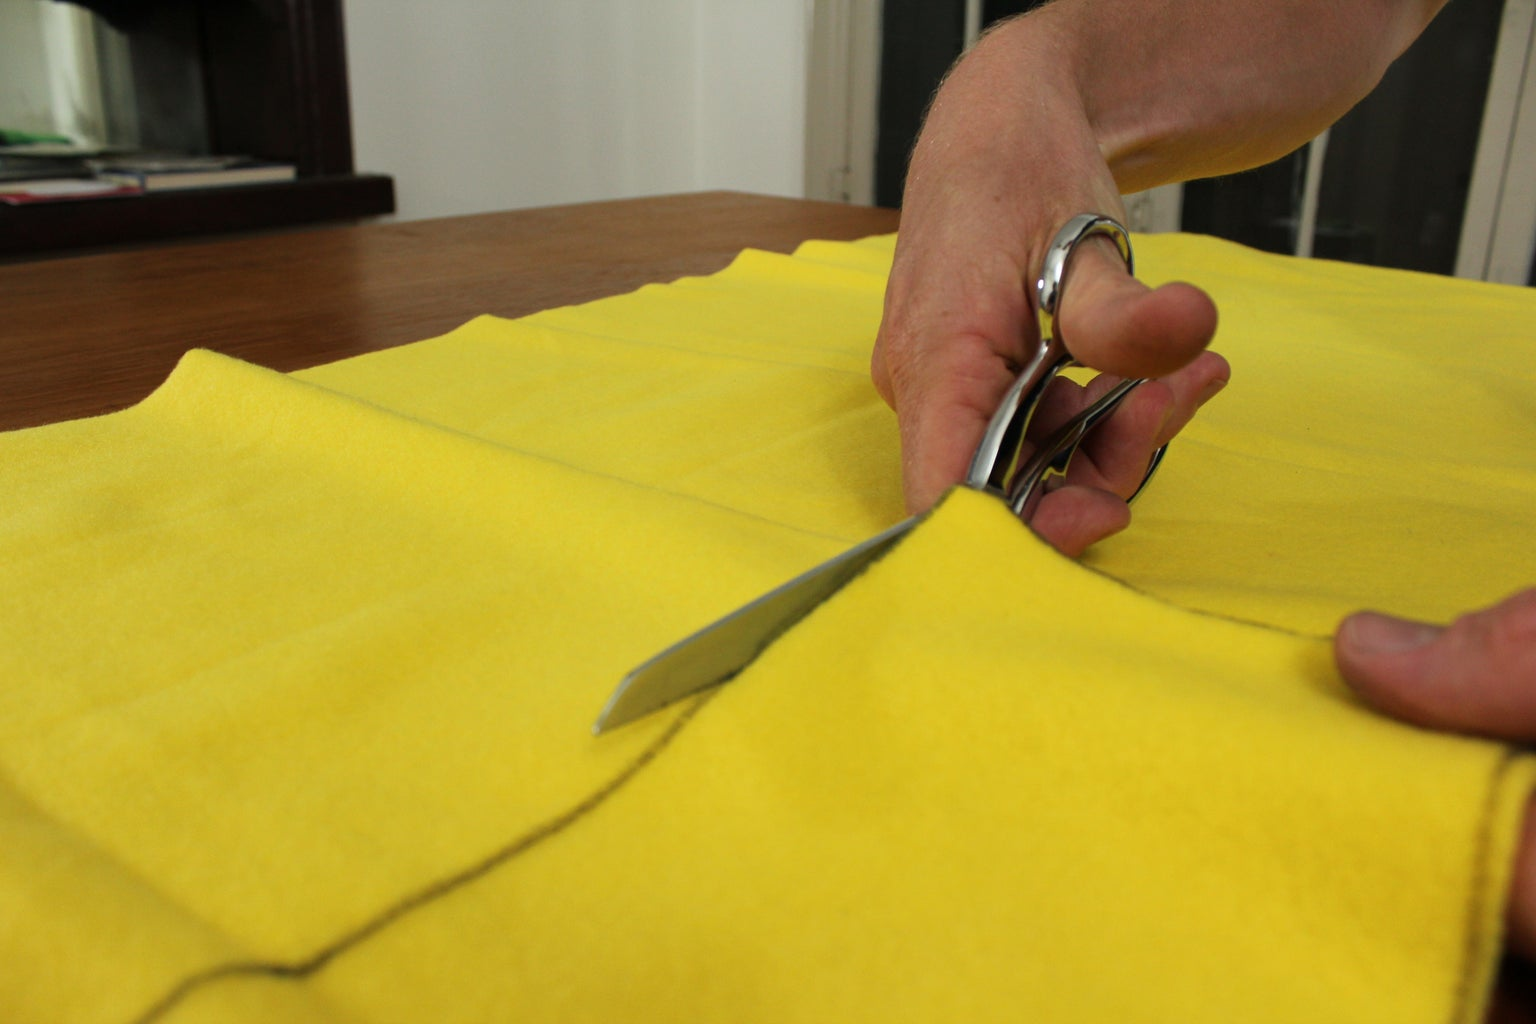 The Chest, Tracing and Cutting